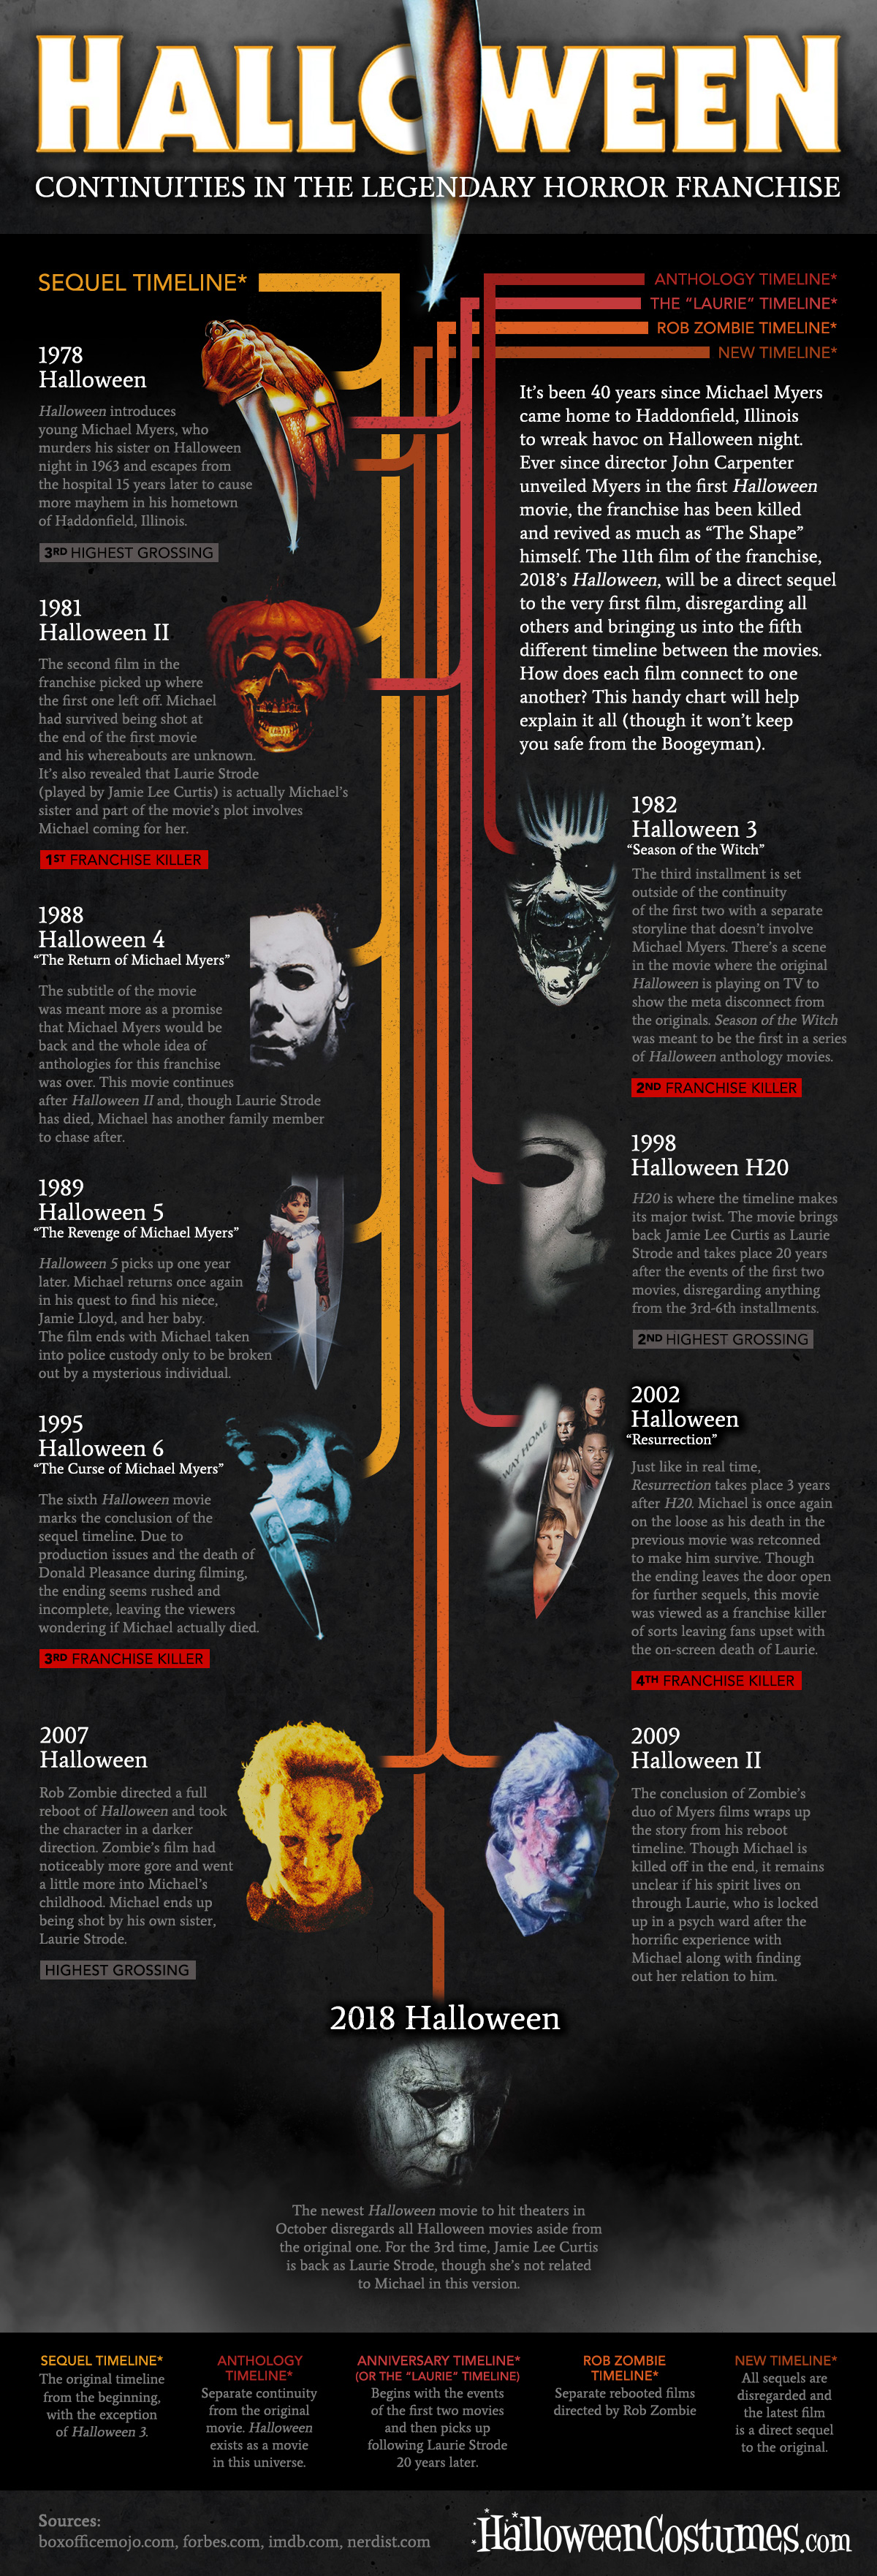 Halloween Movies Timeline